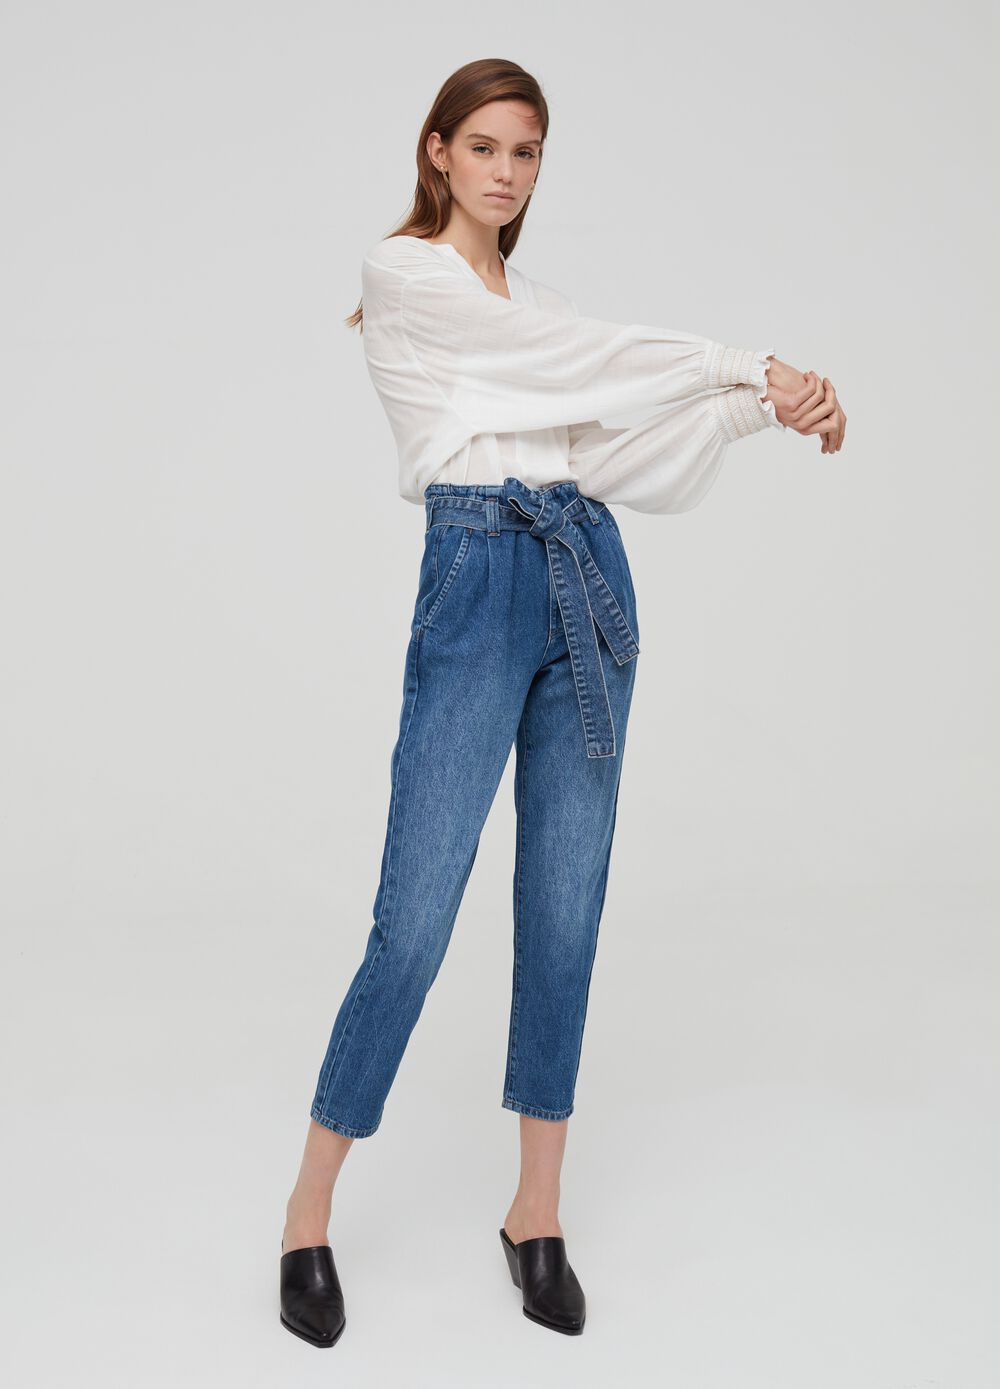 Mum-fit jeans with belt